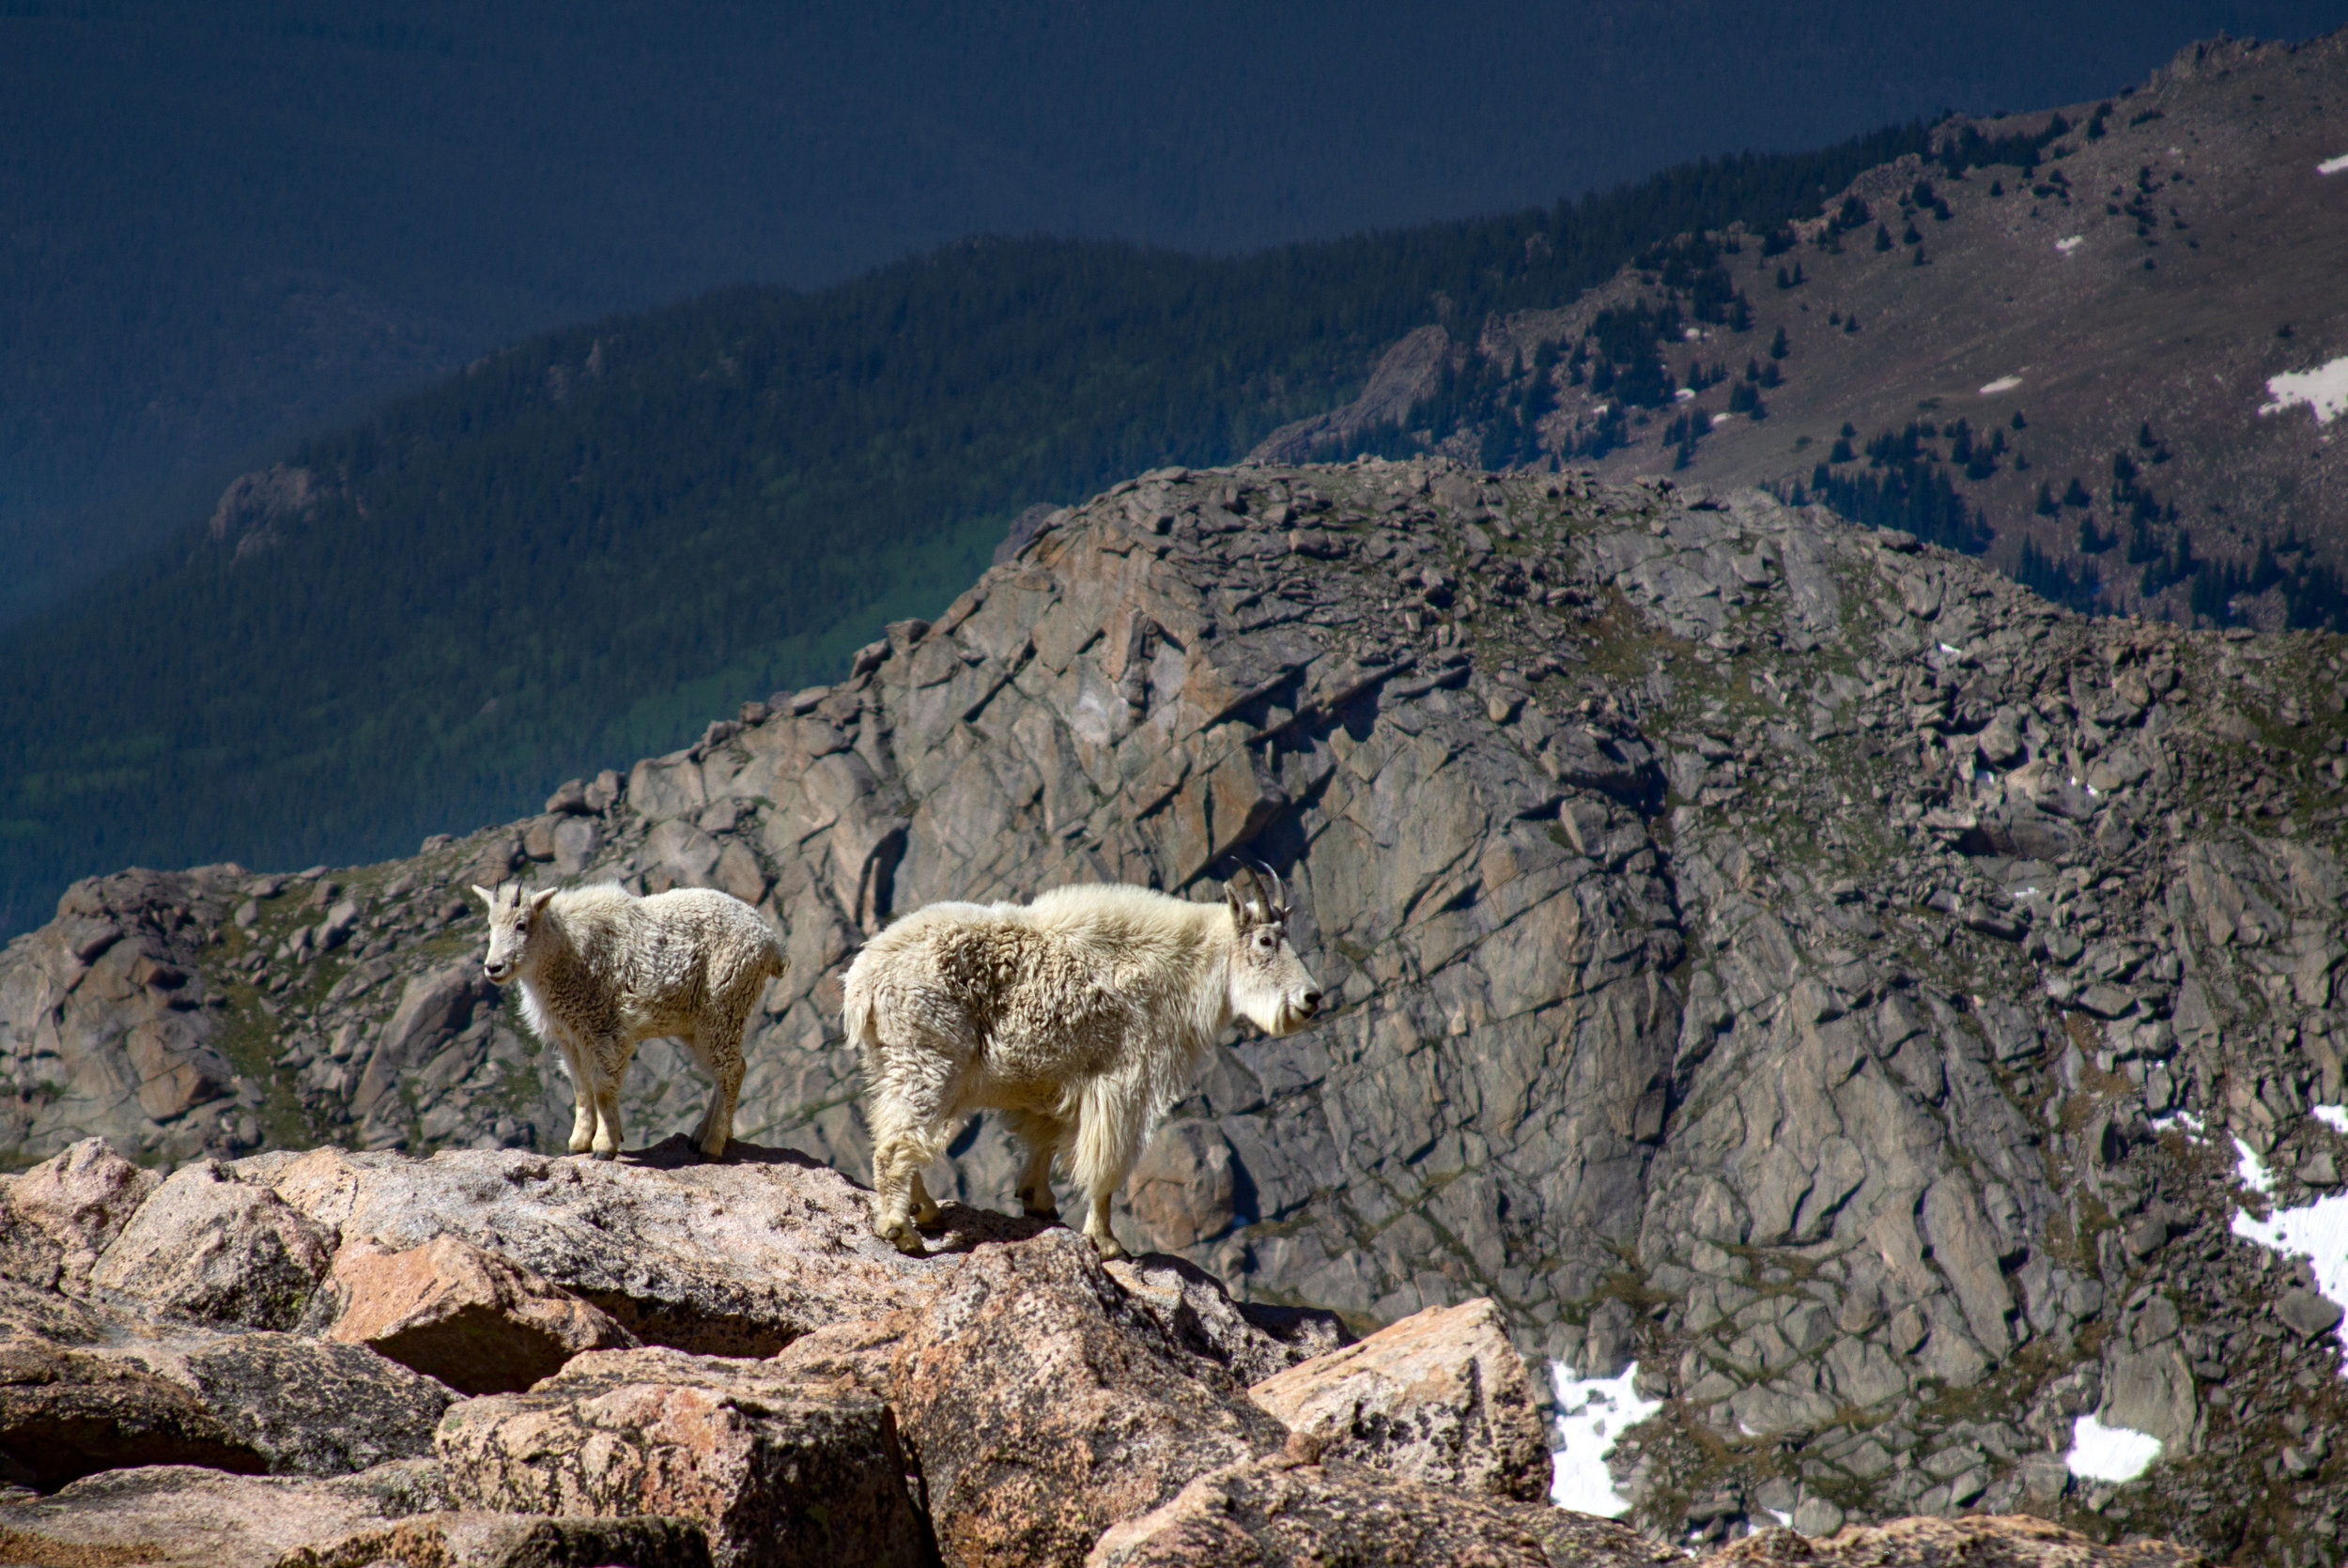 vickygood_travel_photography_colorado_mt.evans_goats10.jpg